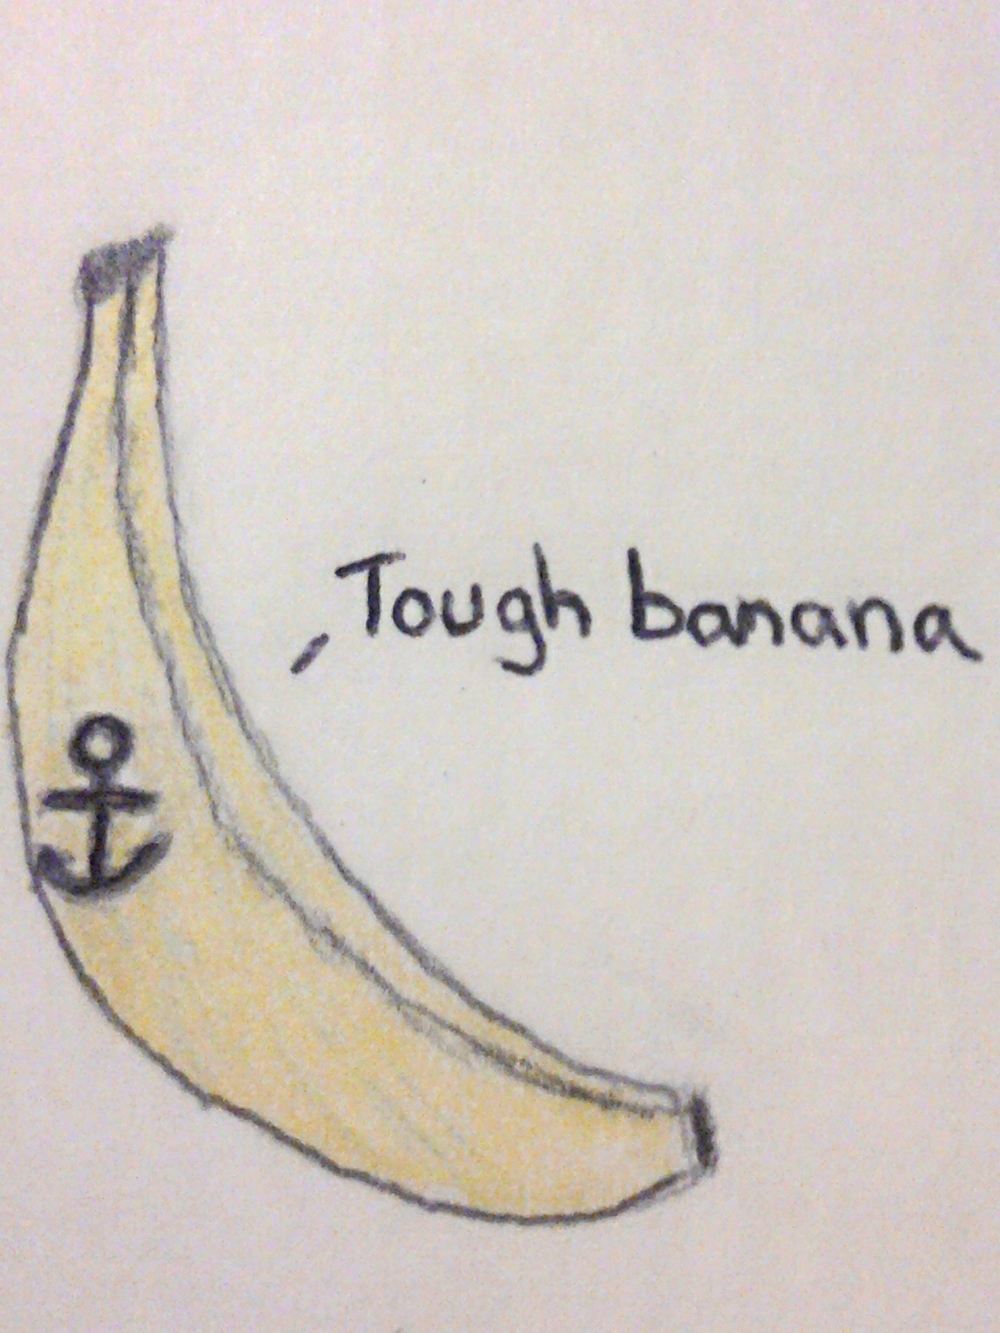 Tough Banana